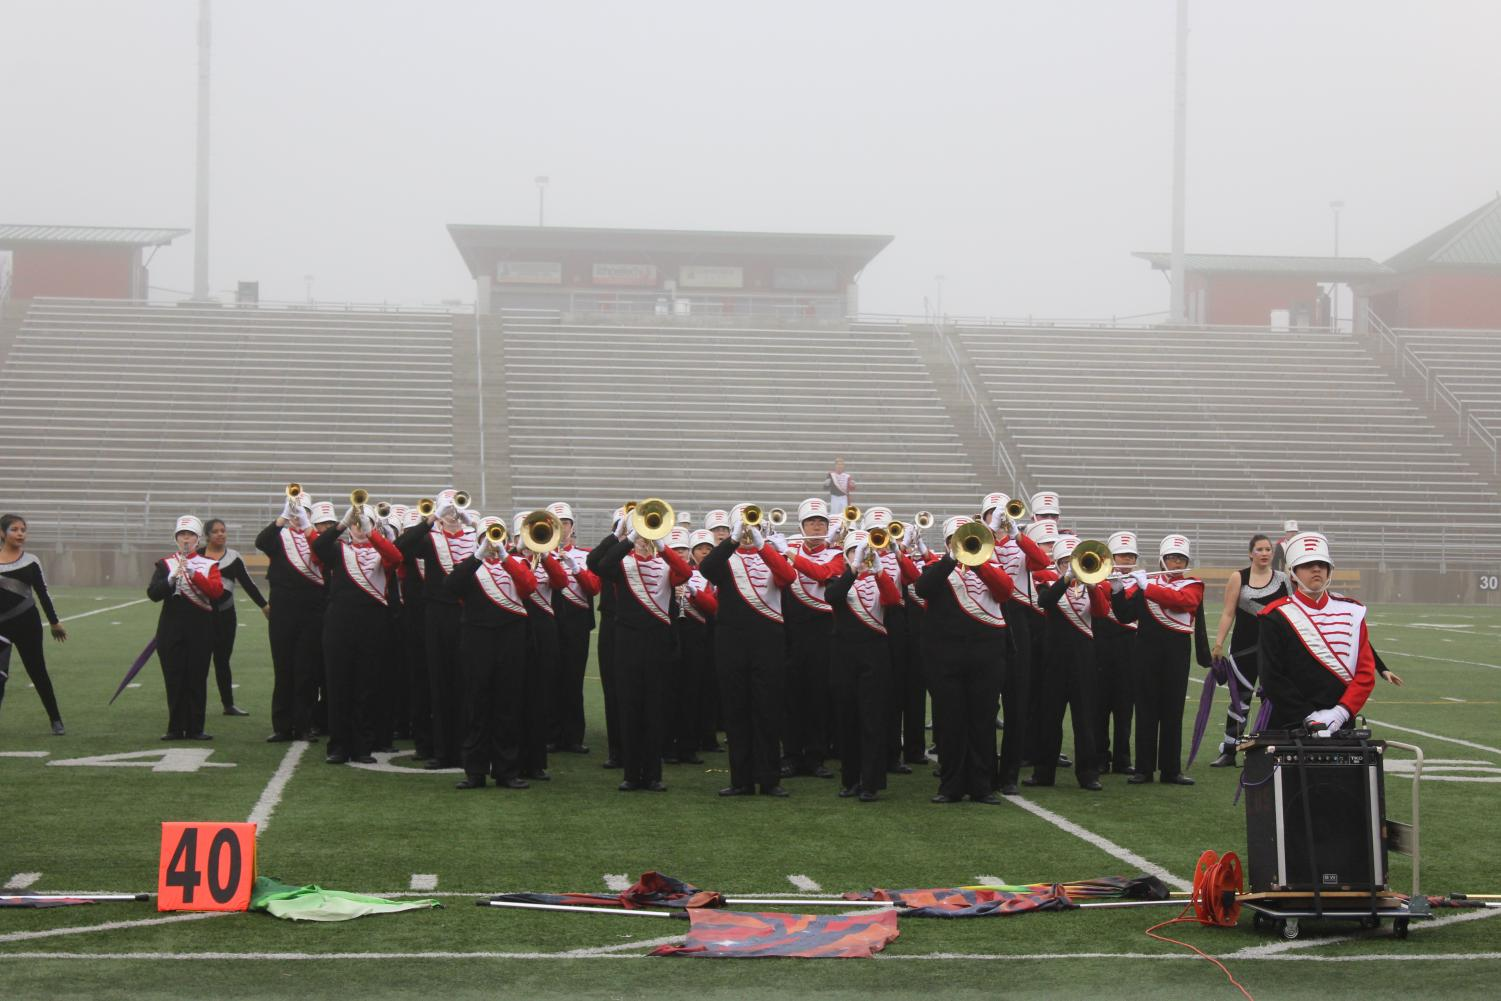 LHS Band Participates in a contest on October 14, 2017. All LHS students involved in a music program such as band, orchestra, or show choir are eligible to go on the 2019 trip. Photo by The Advocate.